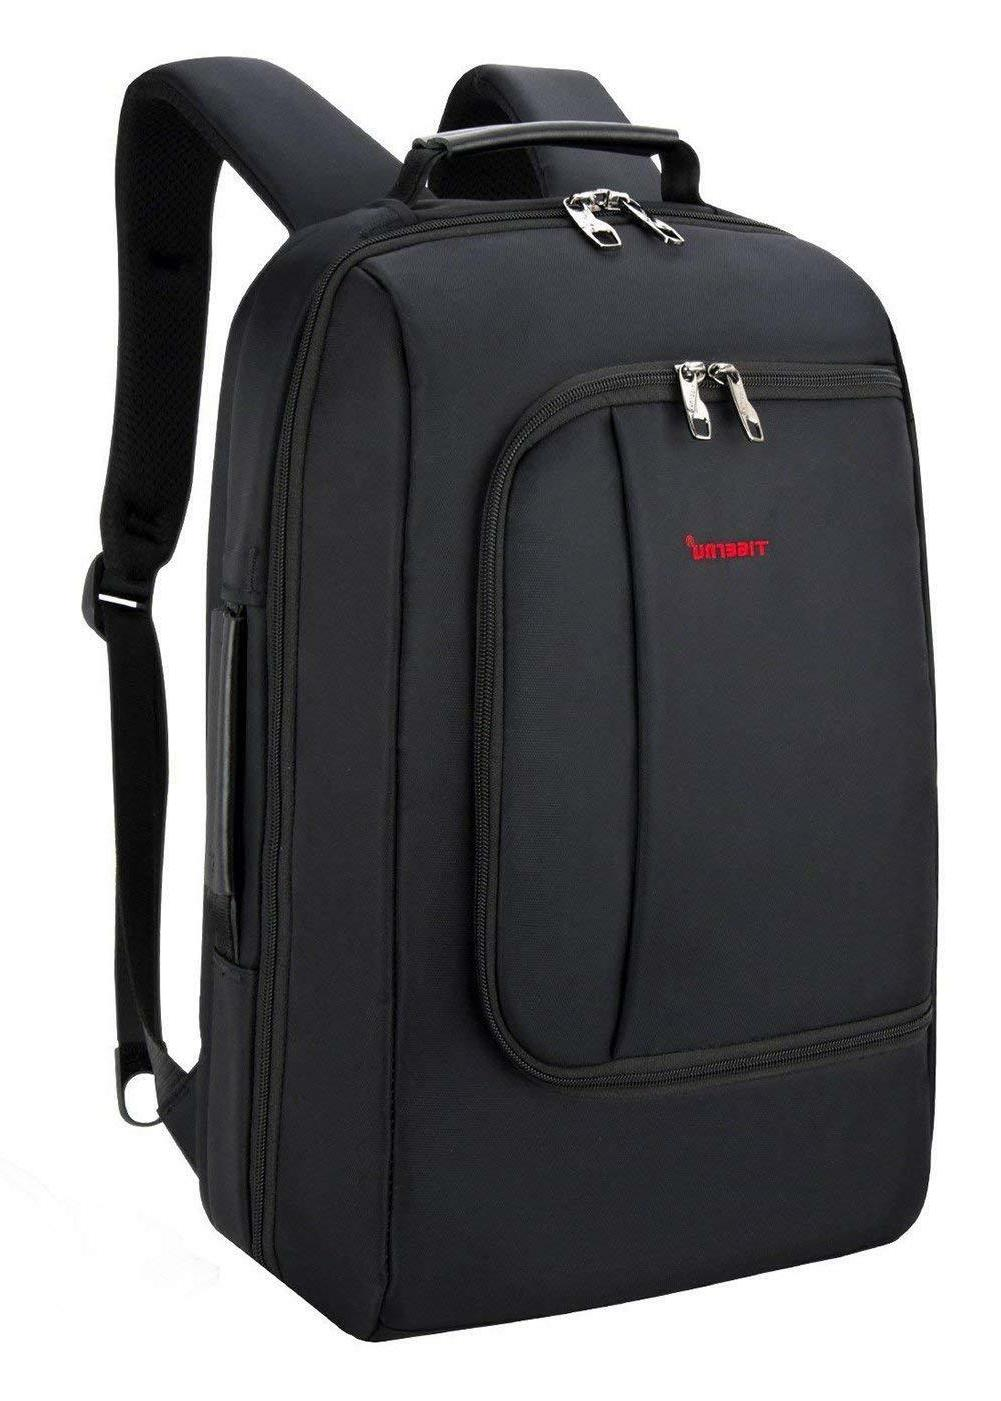 Slim Business Backpack for 15 15.6 Inch Laptops w/ USB Charg